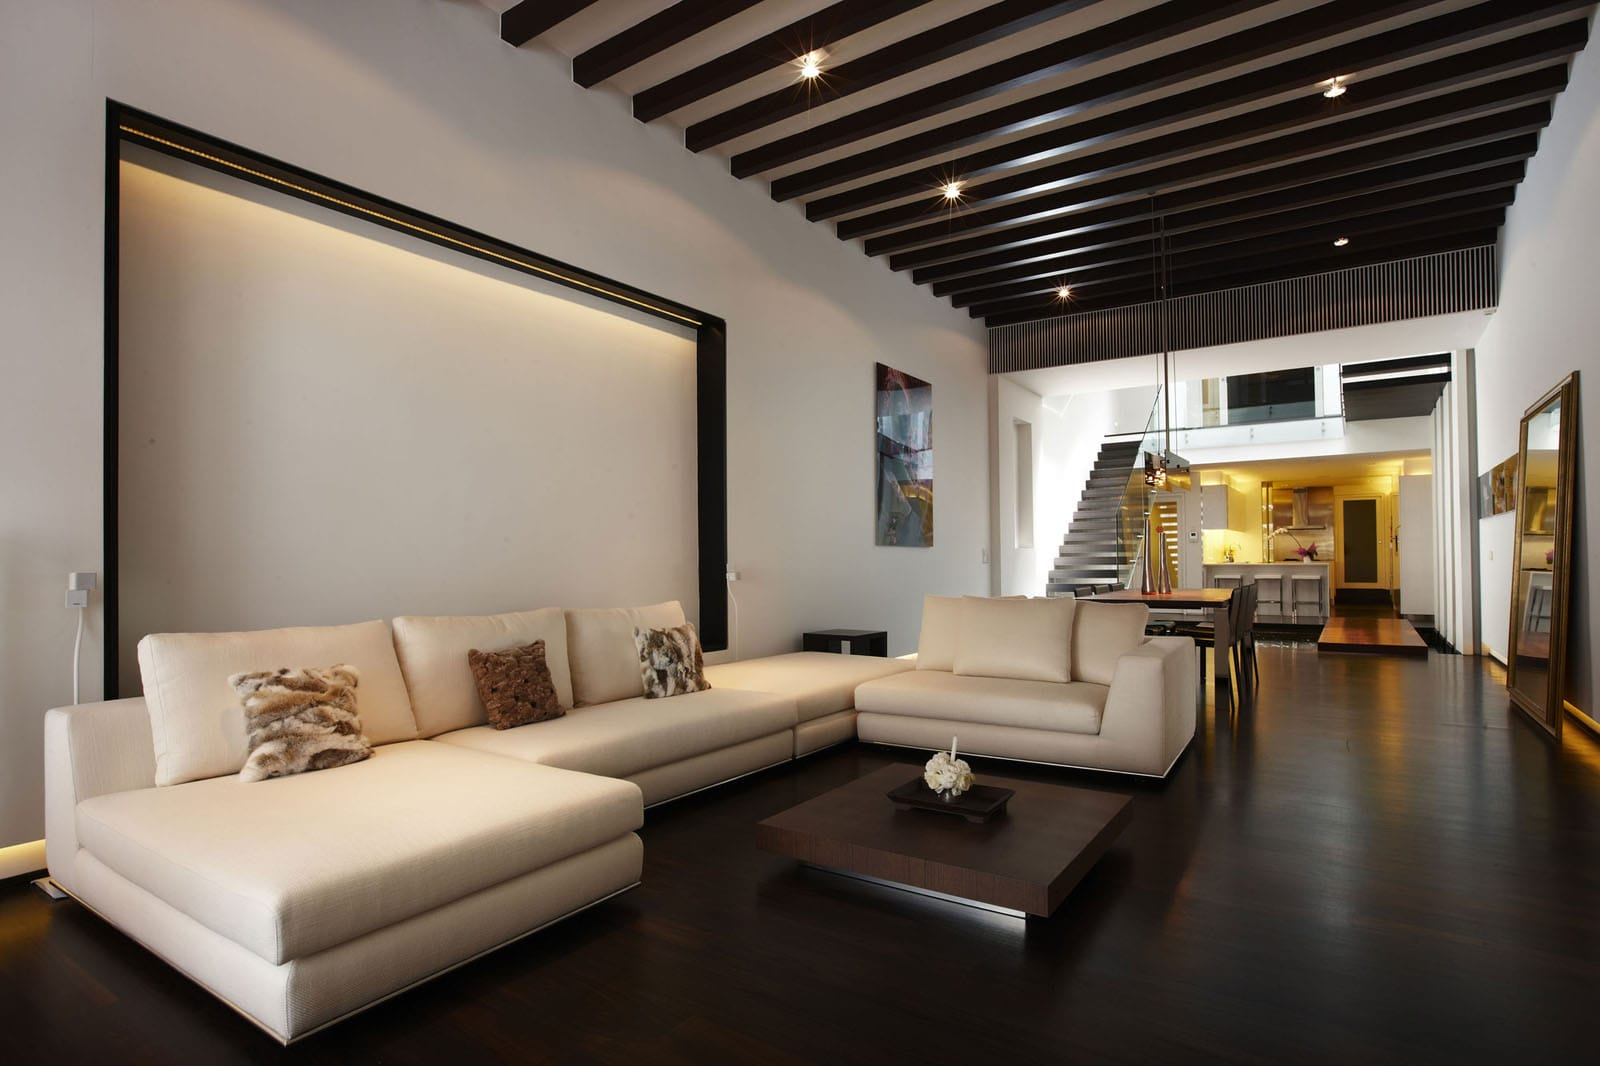 Residential And Commercial Interior Design Ideas Sg Home Needs